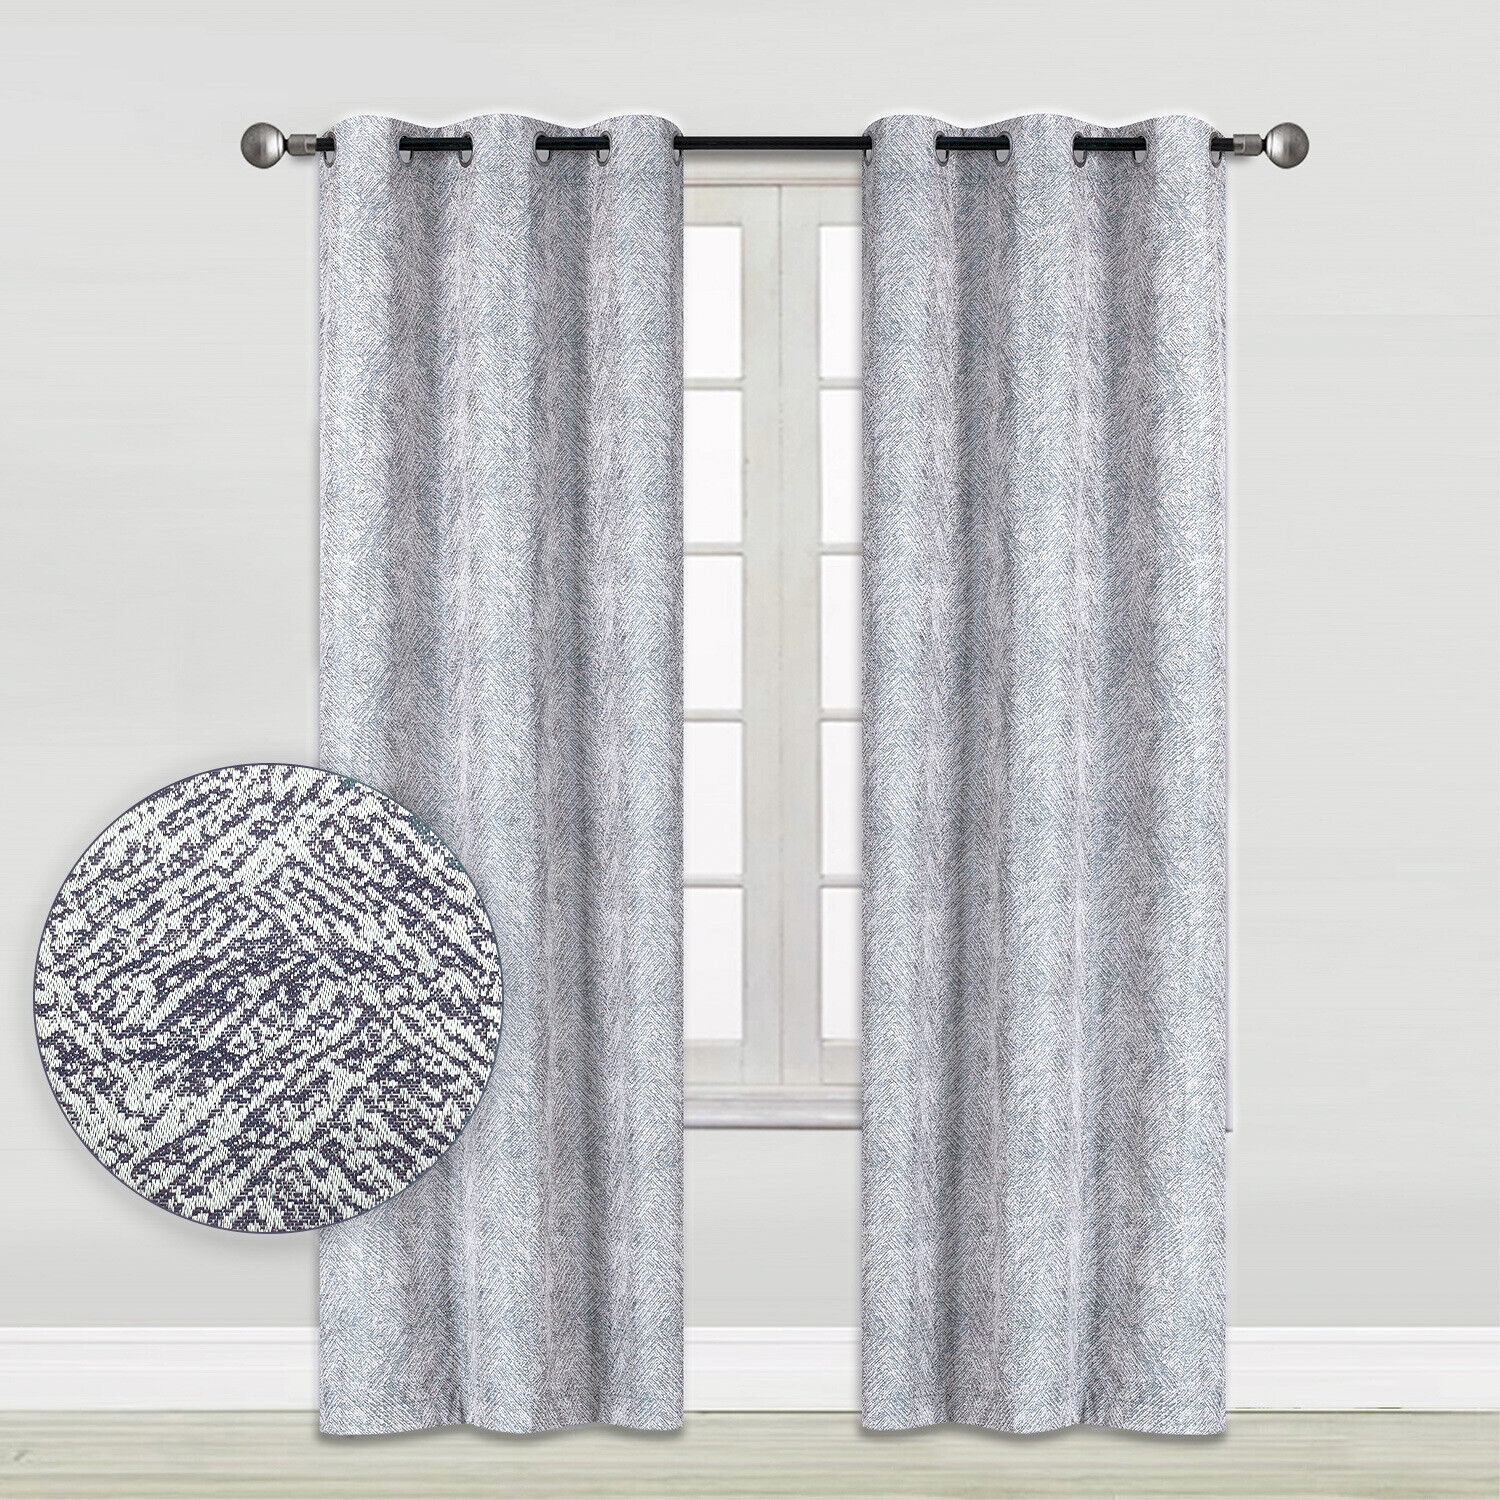 Woven Grey Chevron Blackout Window Curtains 2-Panel Pair 35″ x 84″ or 52″ x 84″ Curtains & Drapes